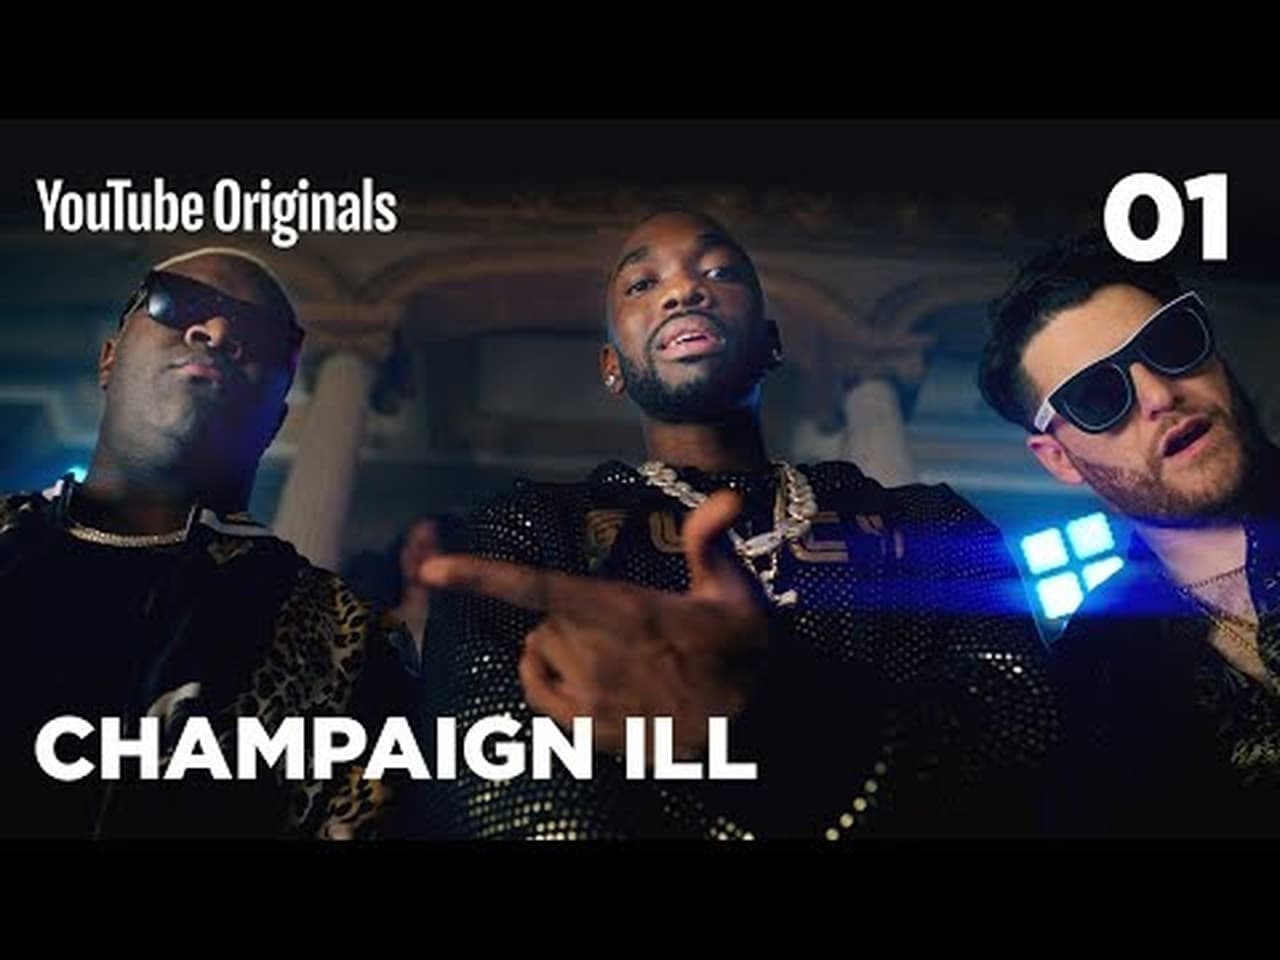 Champaign ILL Episode: A Gangster Way To Start Your Day